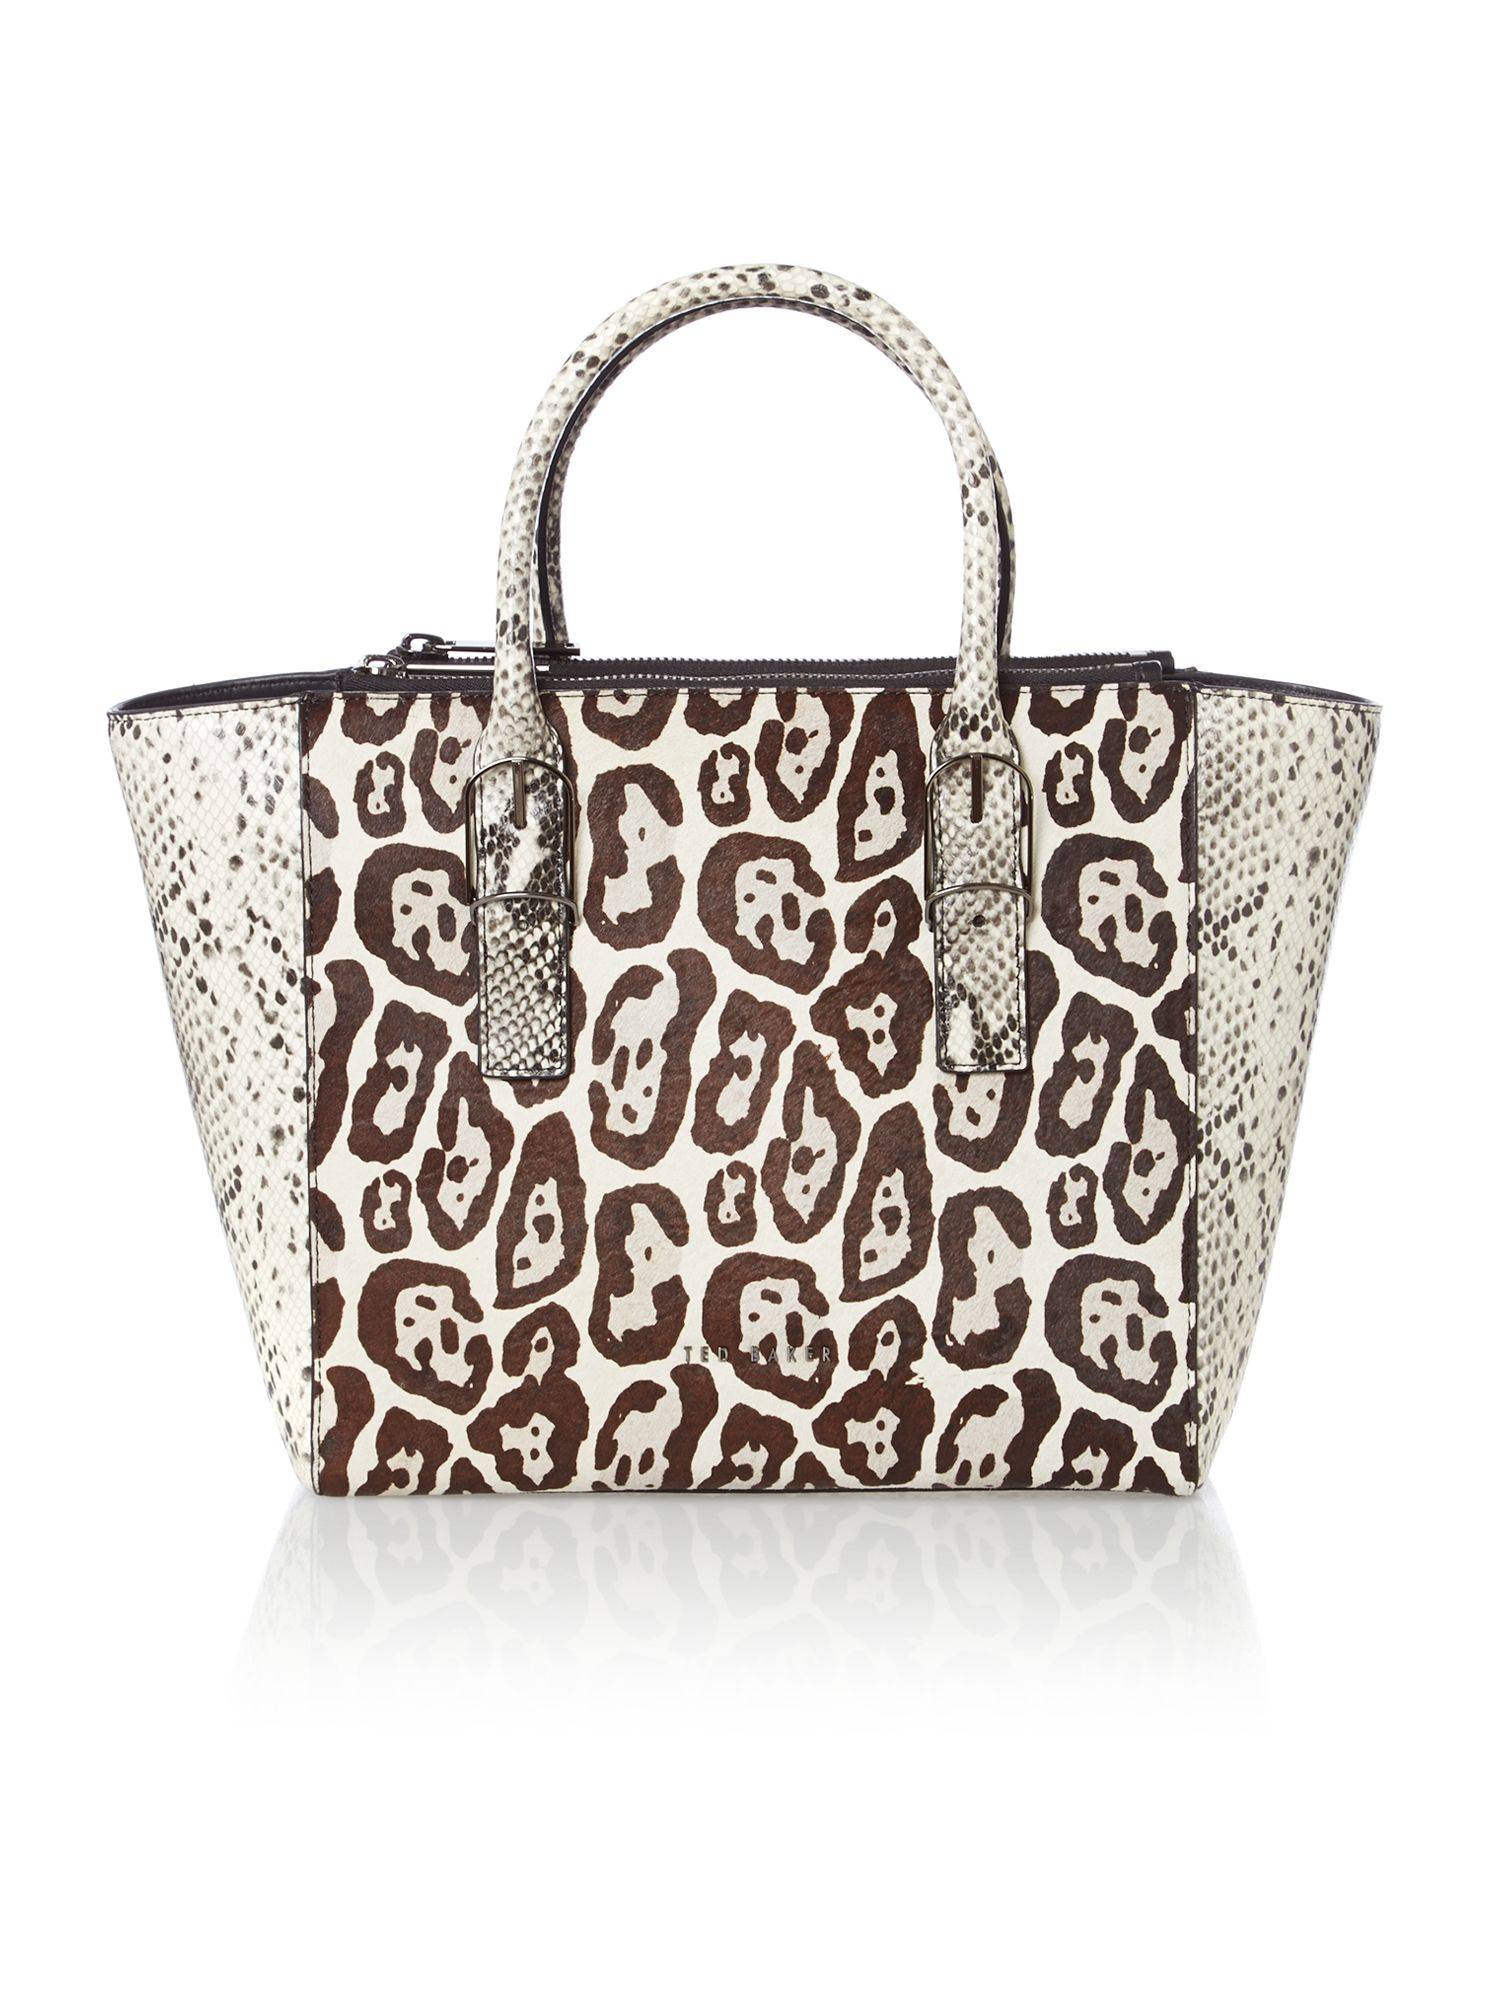 Black animal print large tote bag